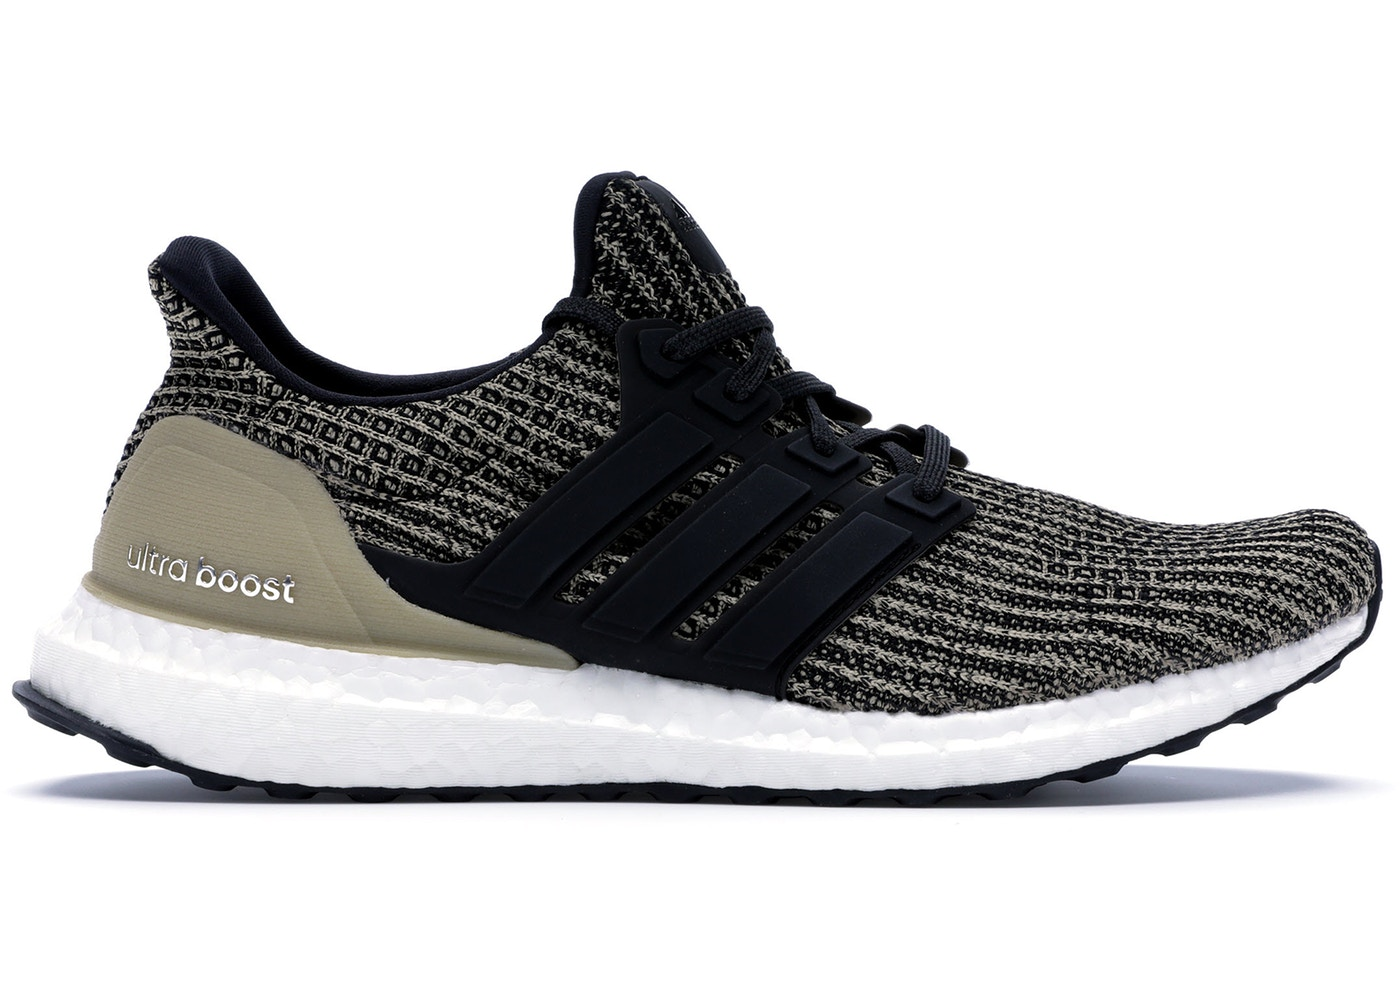 93a9335c7085a adidas Ultra Boost 4.0 Dark Mocha - BB6170